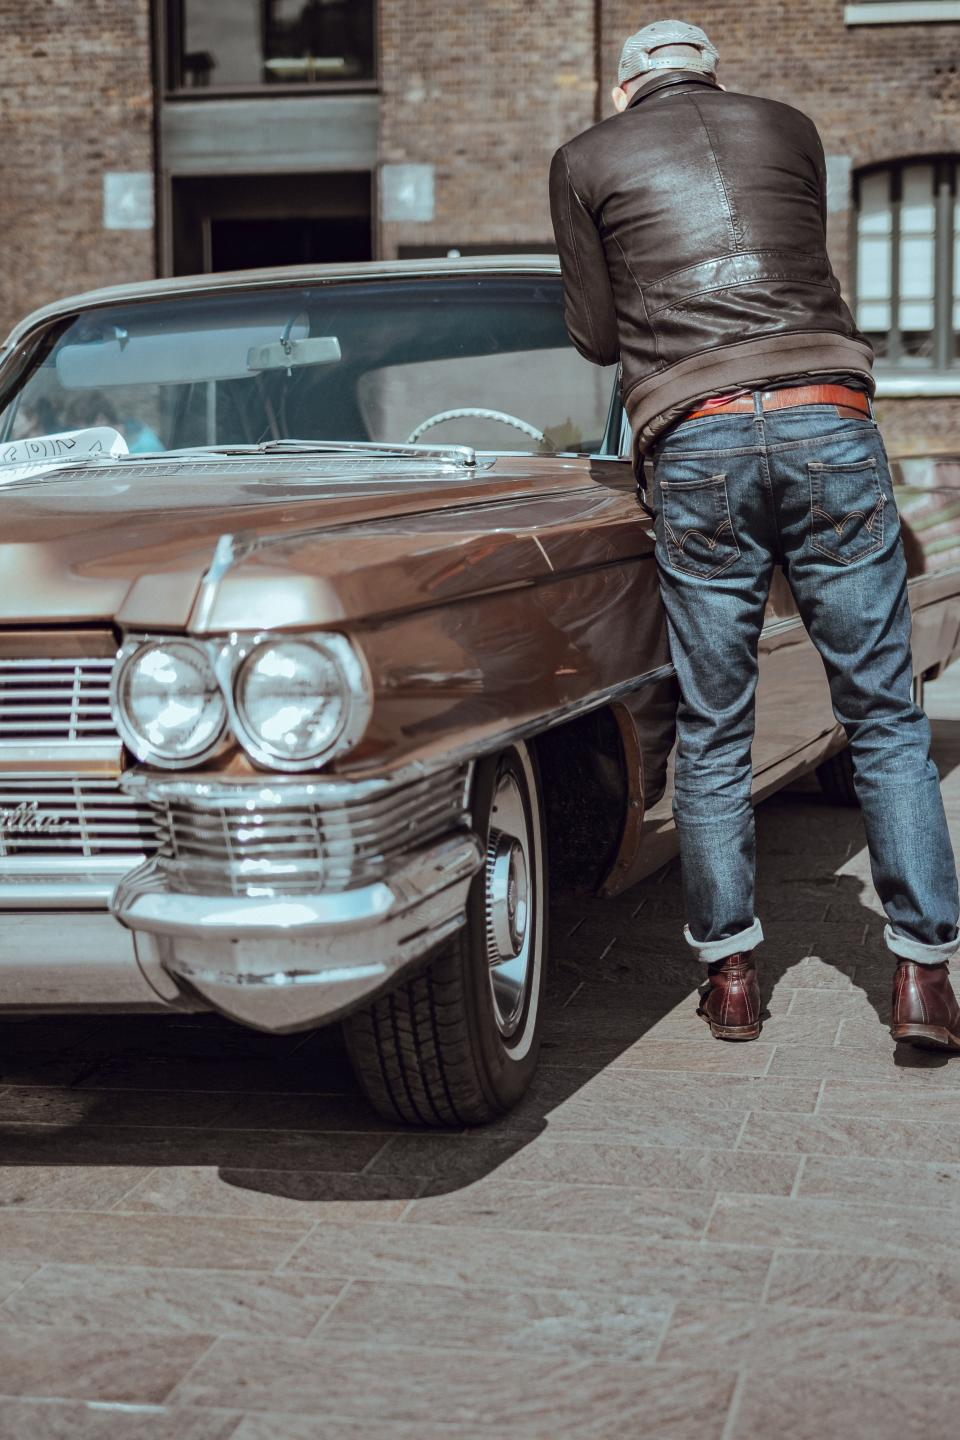 vintage car travel brown people man guy jeans leather jacket sunny day